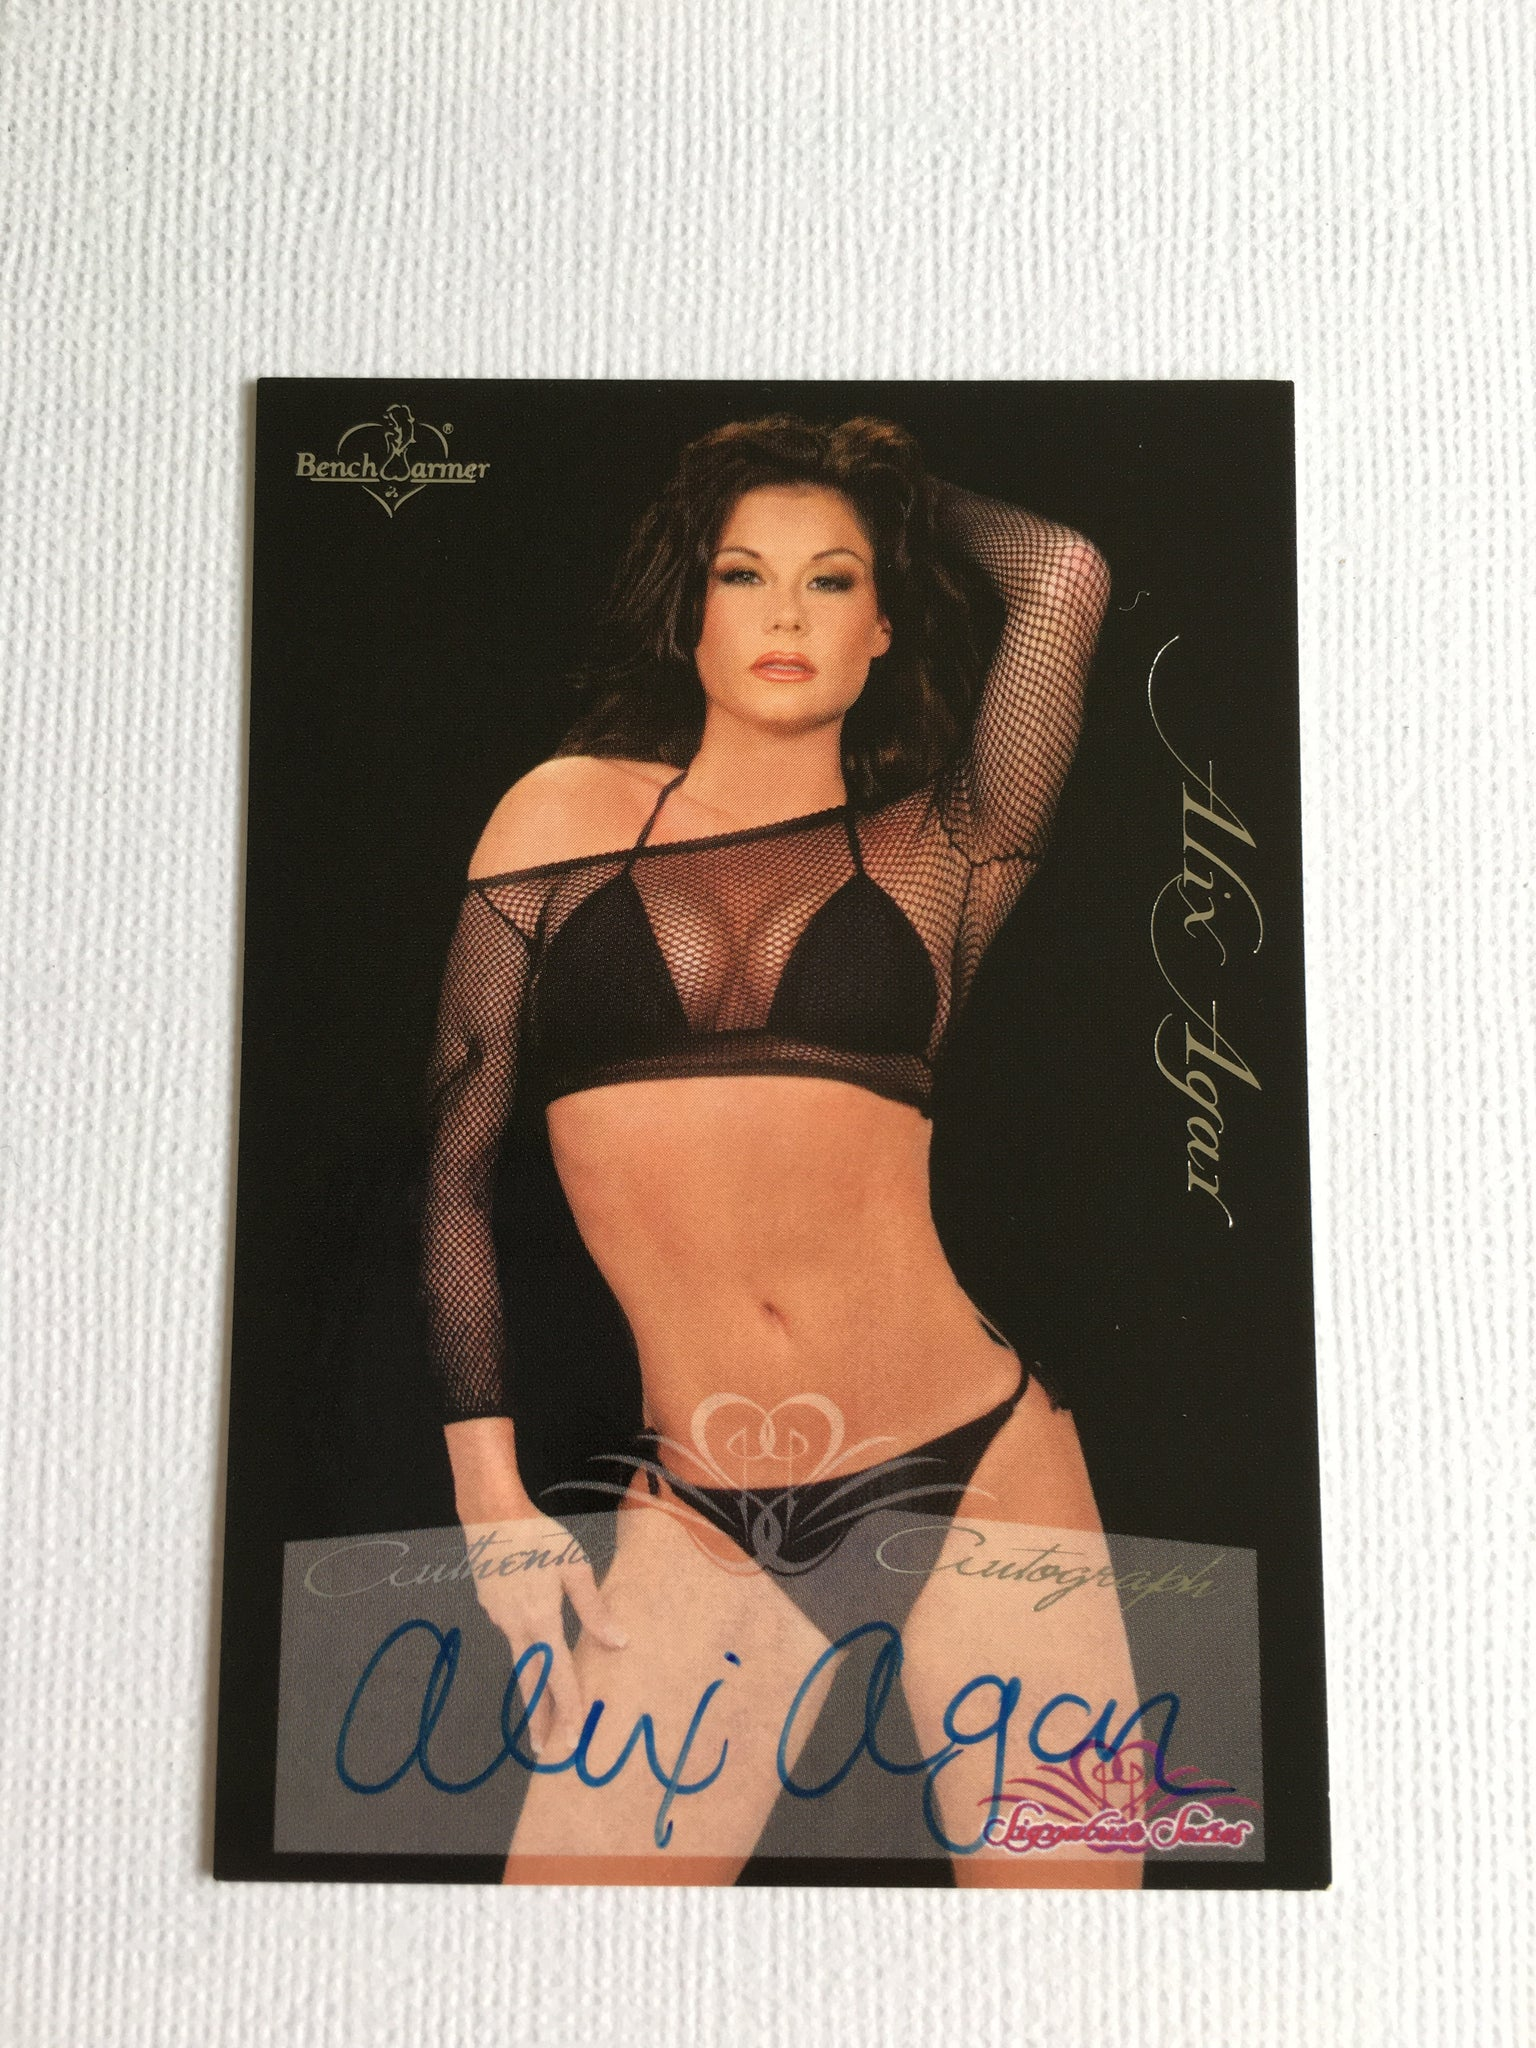 Alix Agar - Autographed Benchwarmer Trading Card (2)